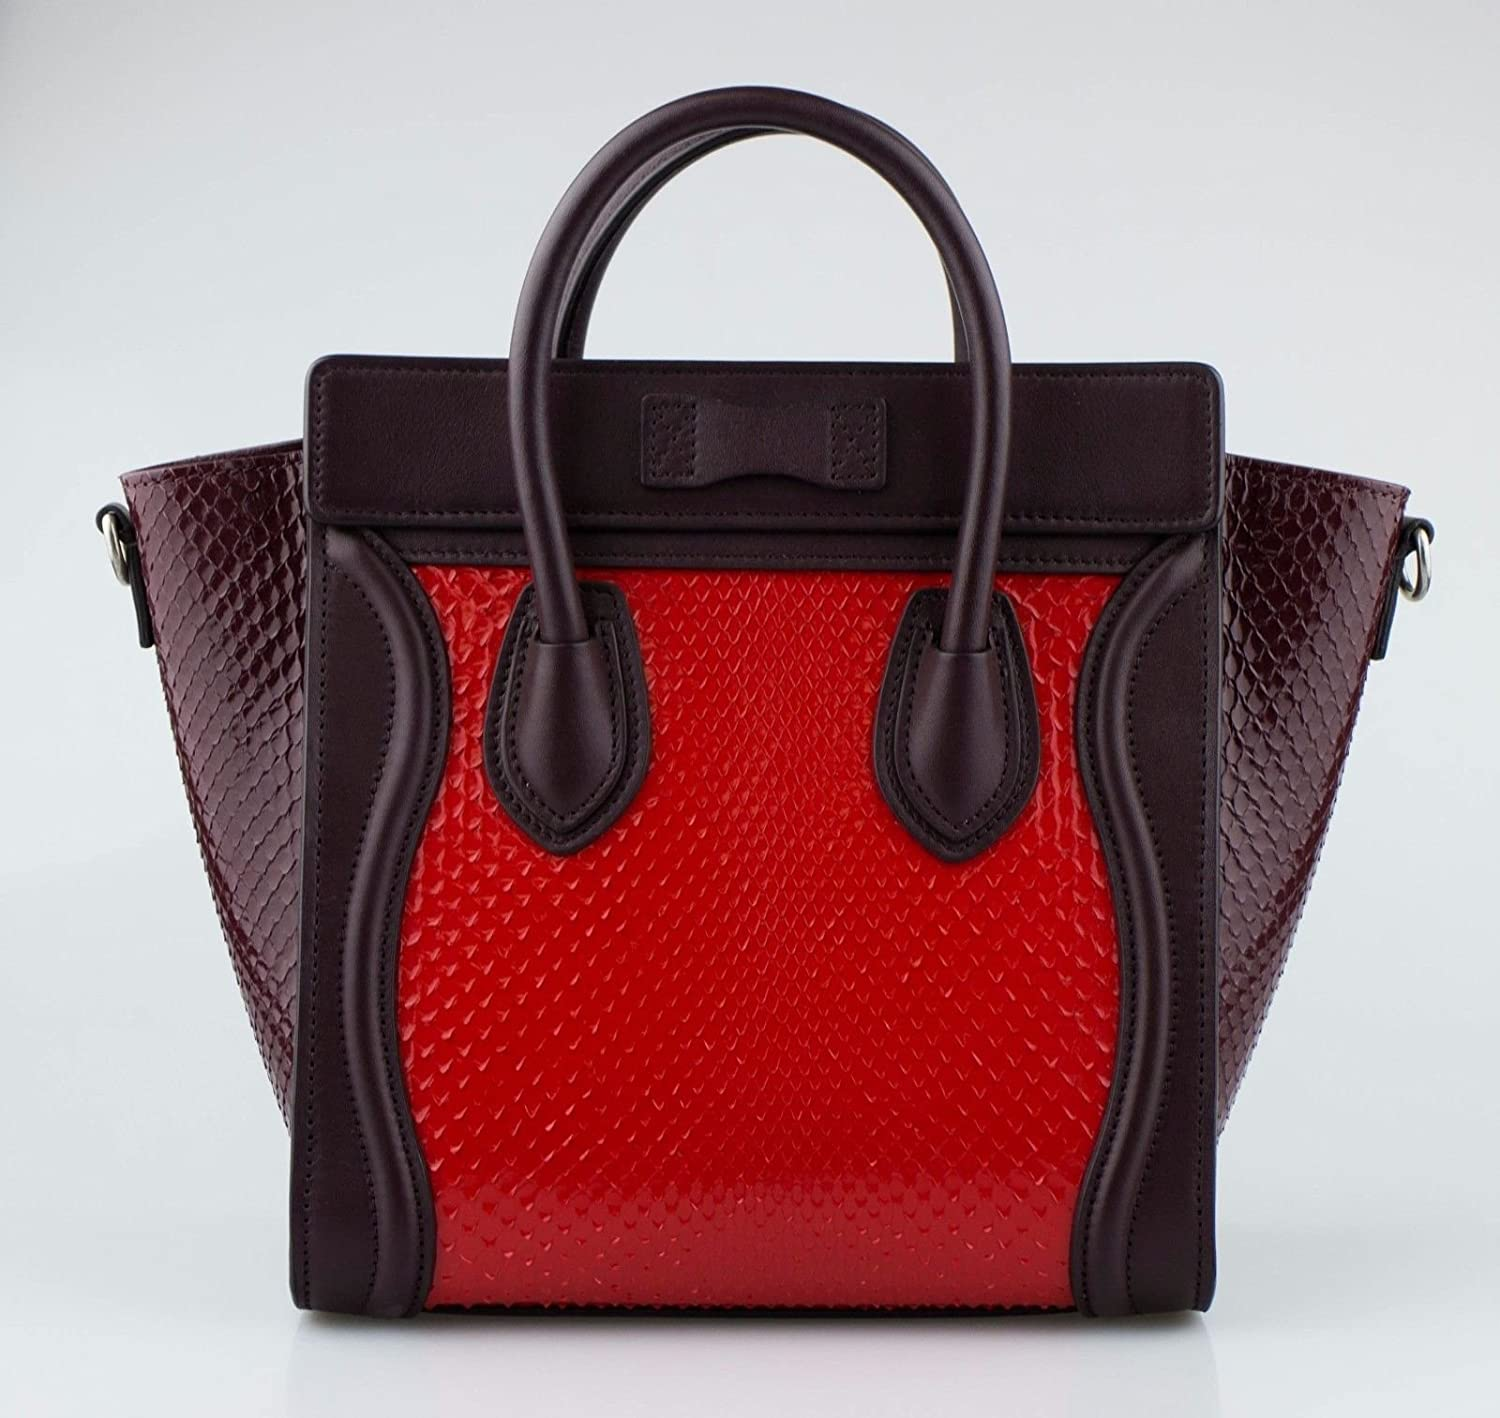 ce3dff48ade Amazon.com: CELINE Red/Brown Shiny Python Leather Nano Luggage ...